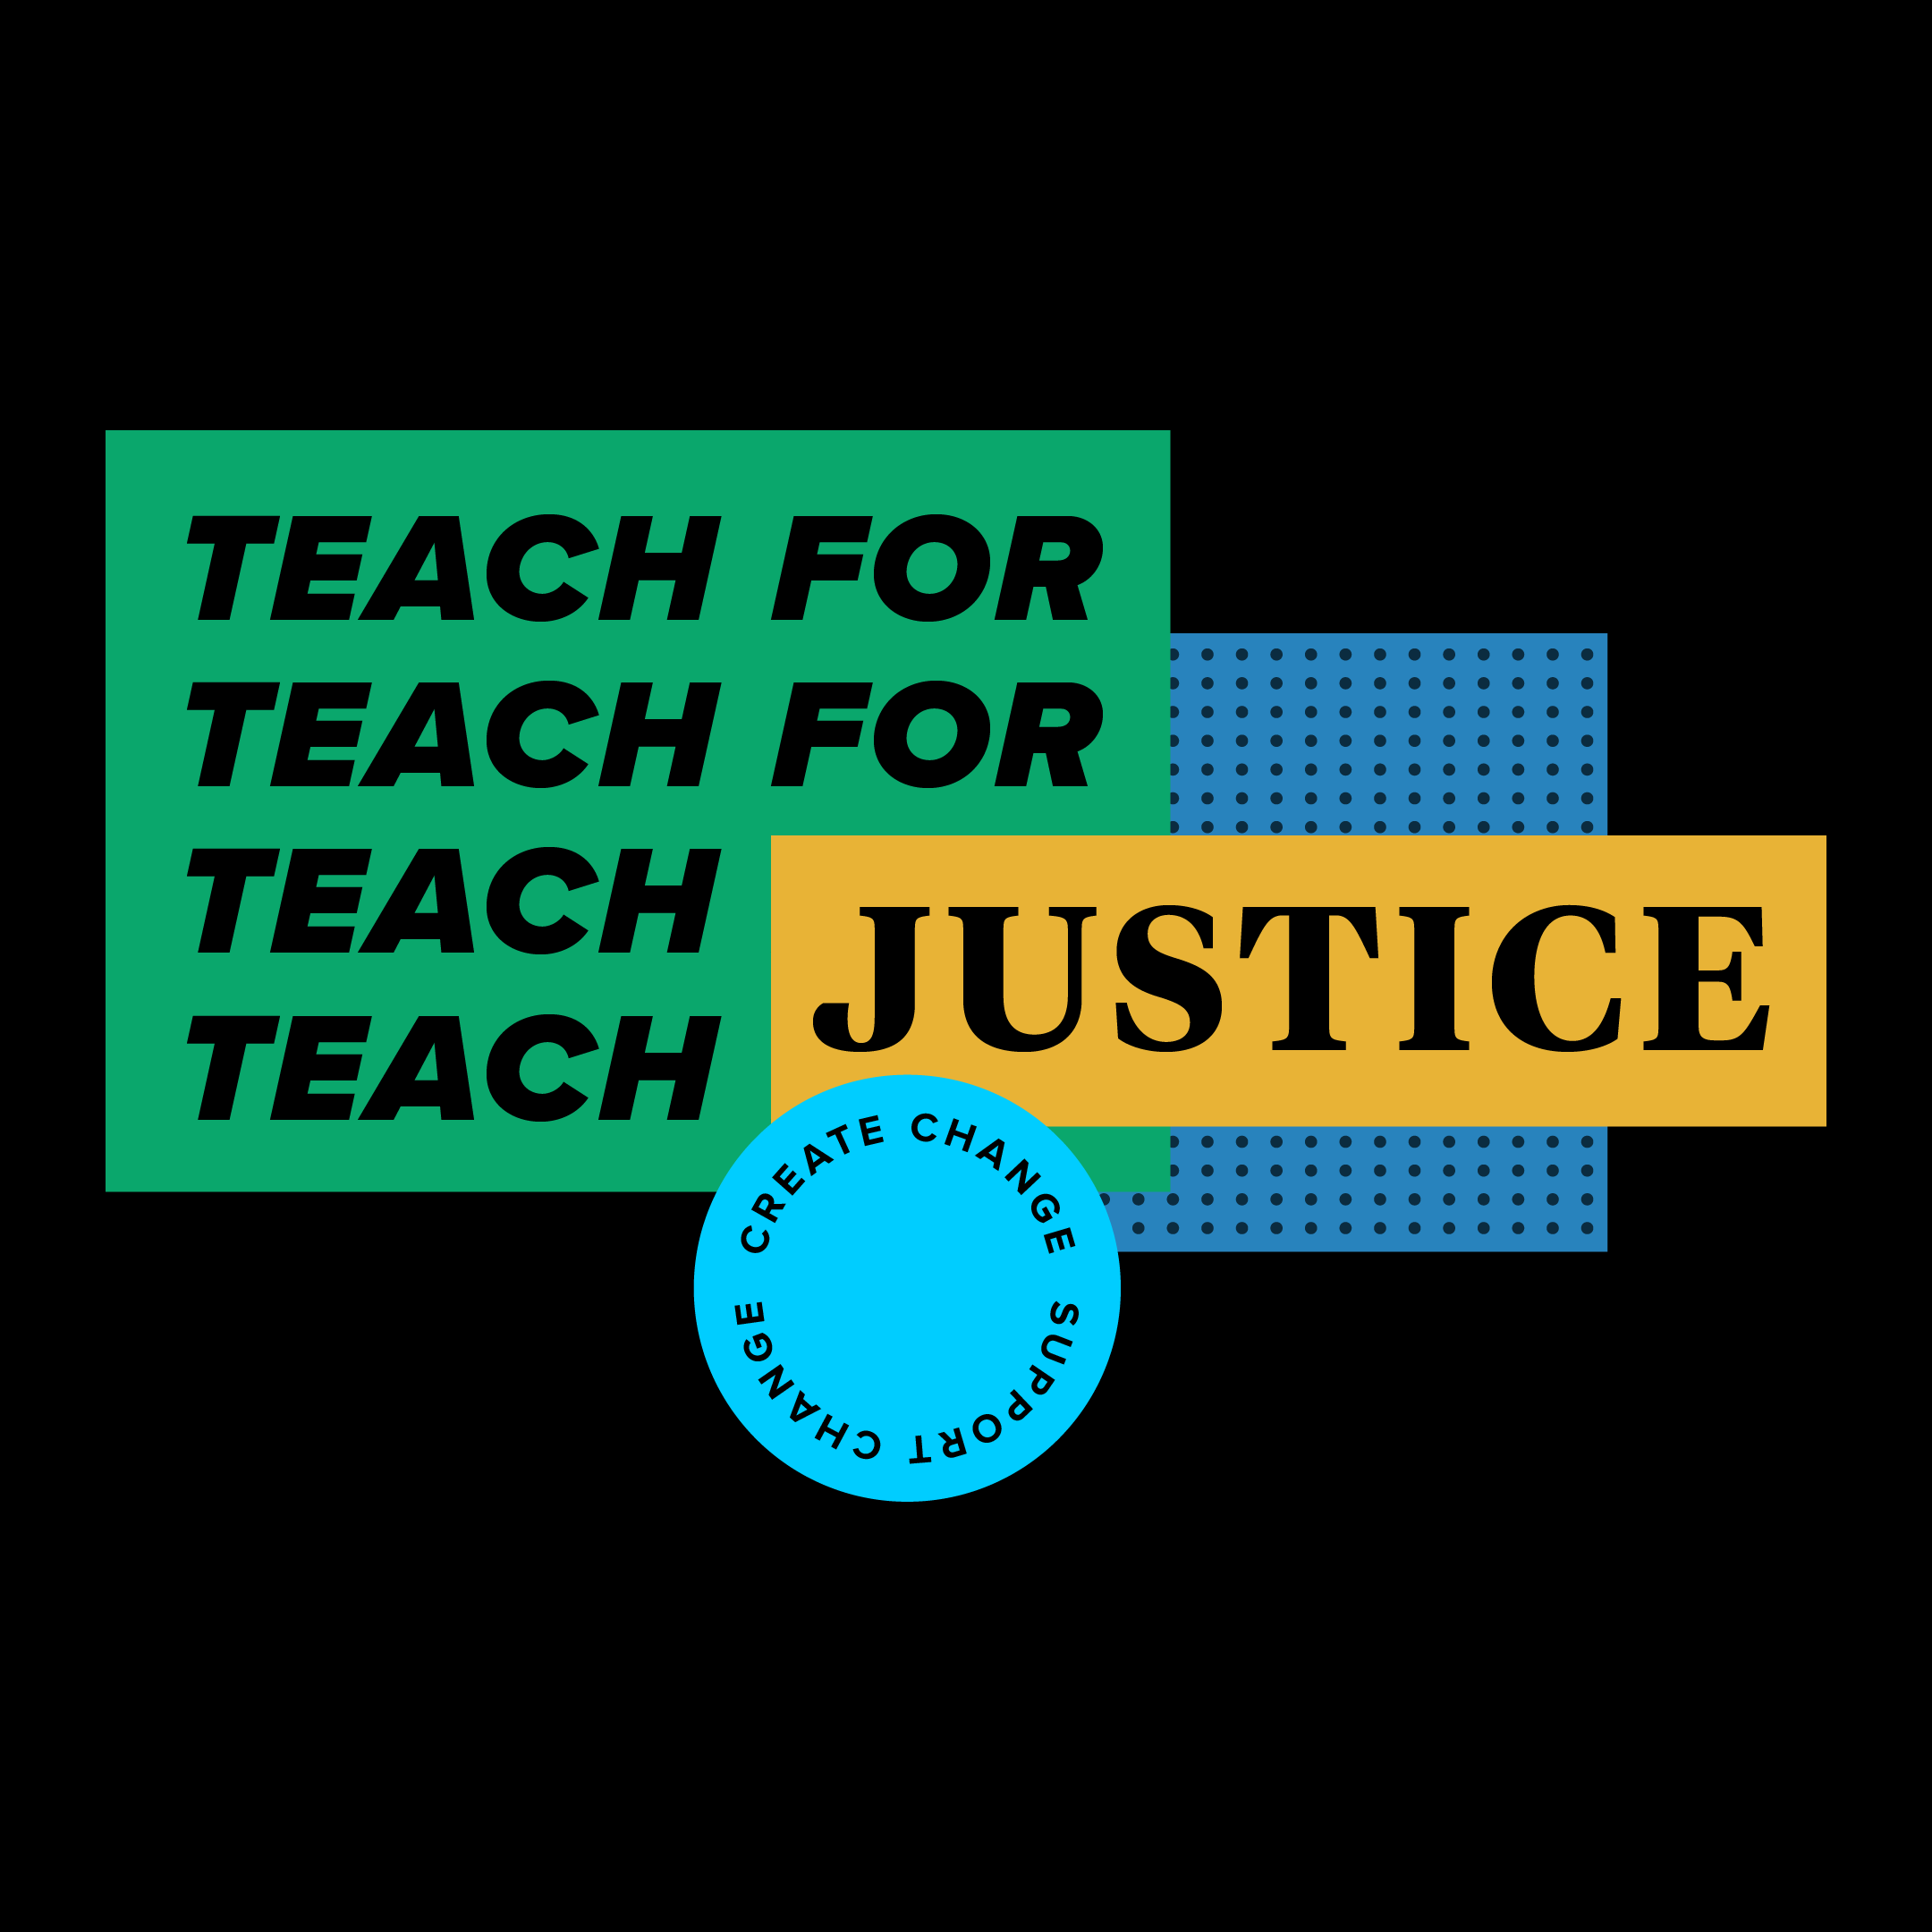 Continue to Support Anti-Racist & Social Justice Education